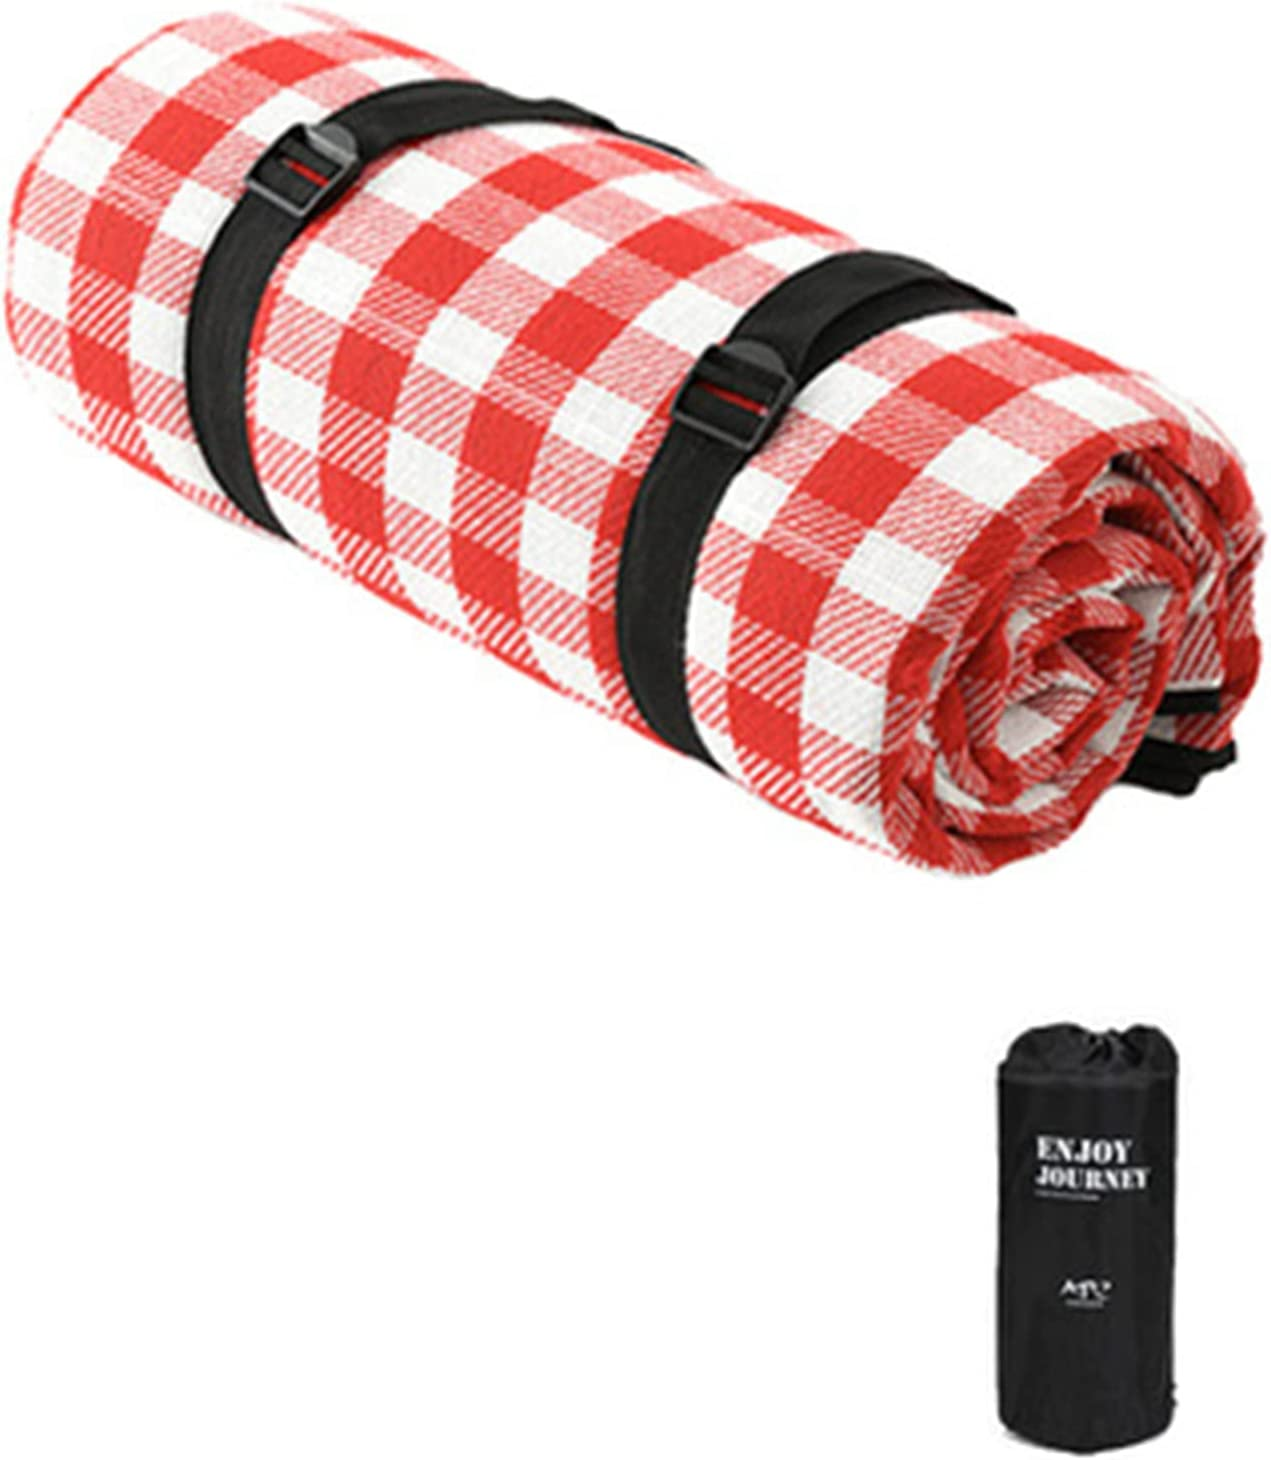 sakalaexp Extra Large Direct Max 59% OFF stock discount Picnic Outdoor Blanket Dual Layers for P